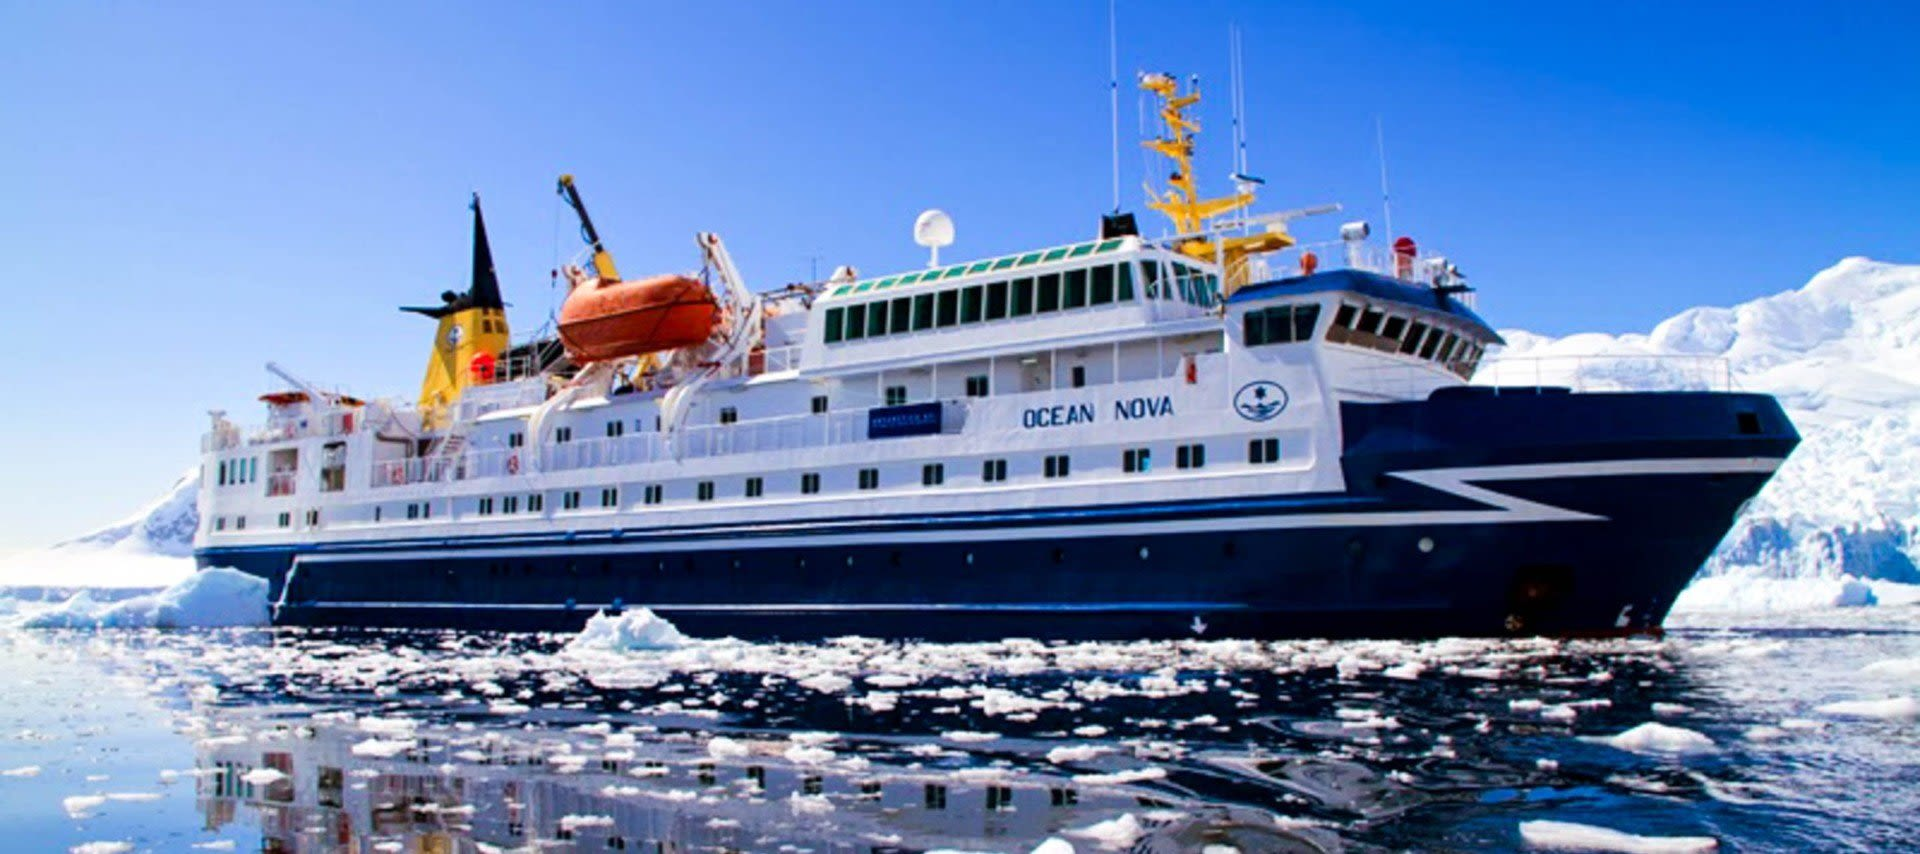 Cruise ship among ice floes in Antarctica